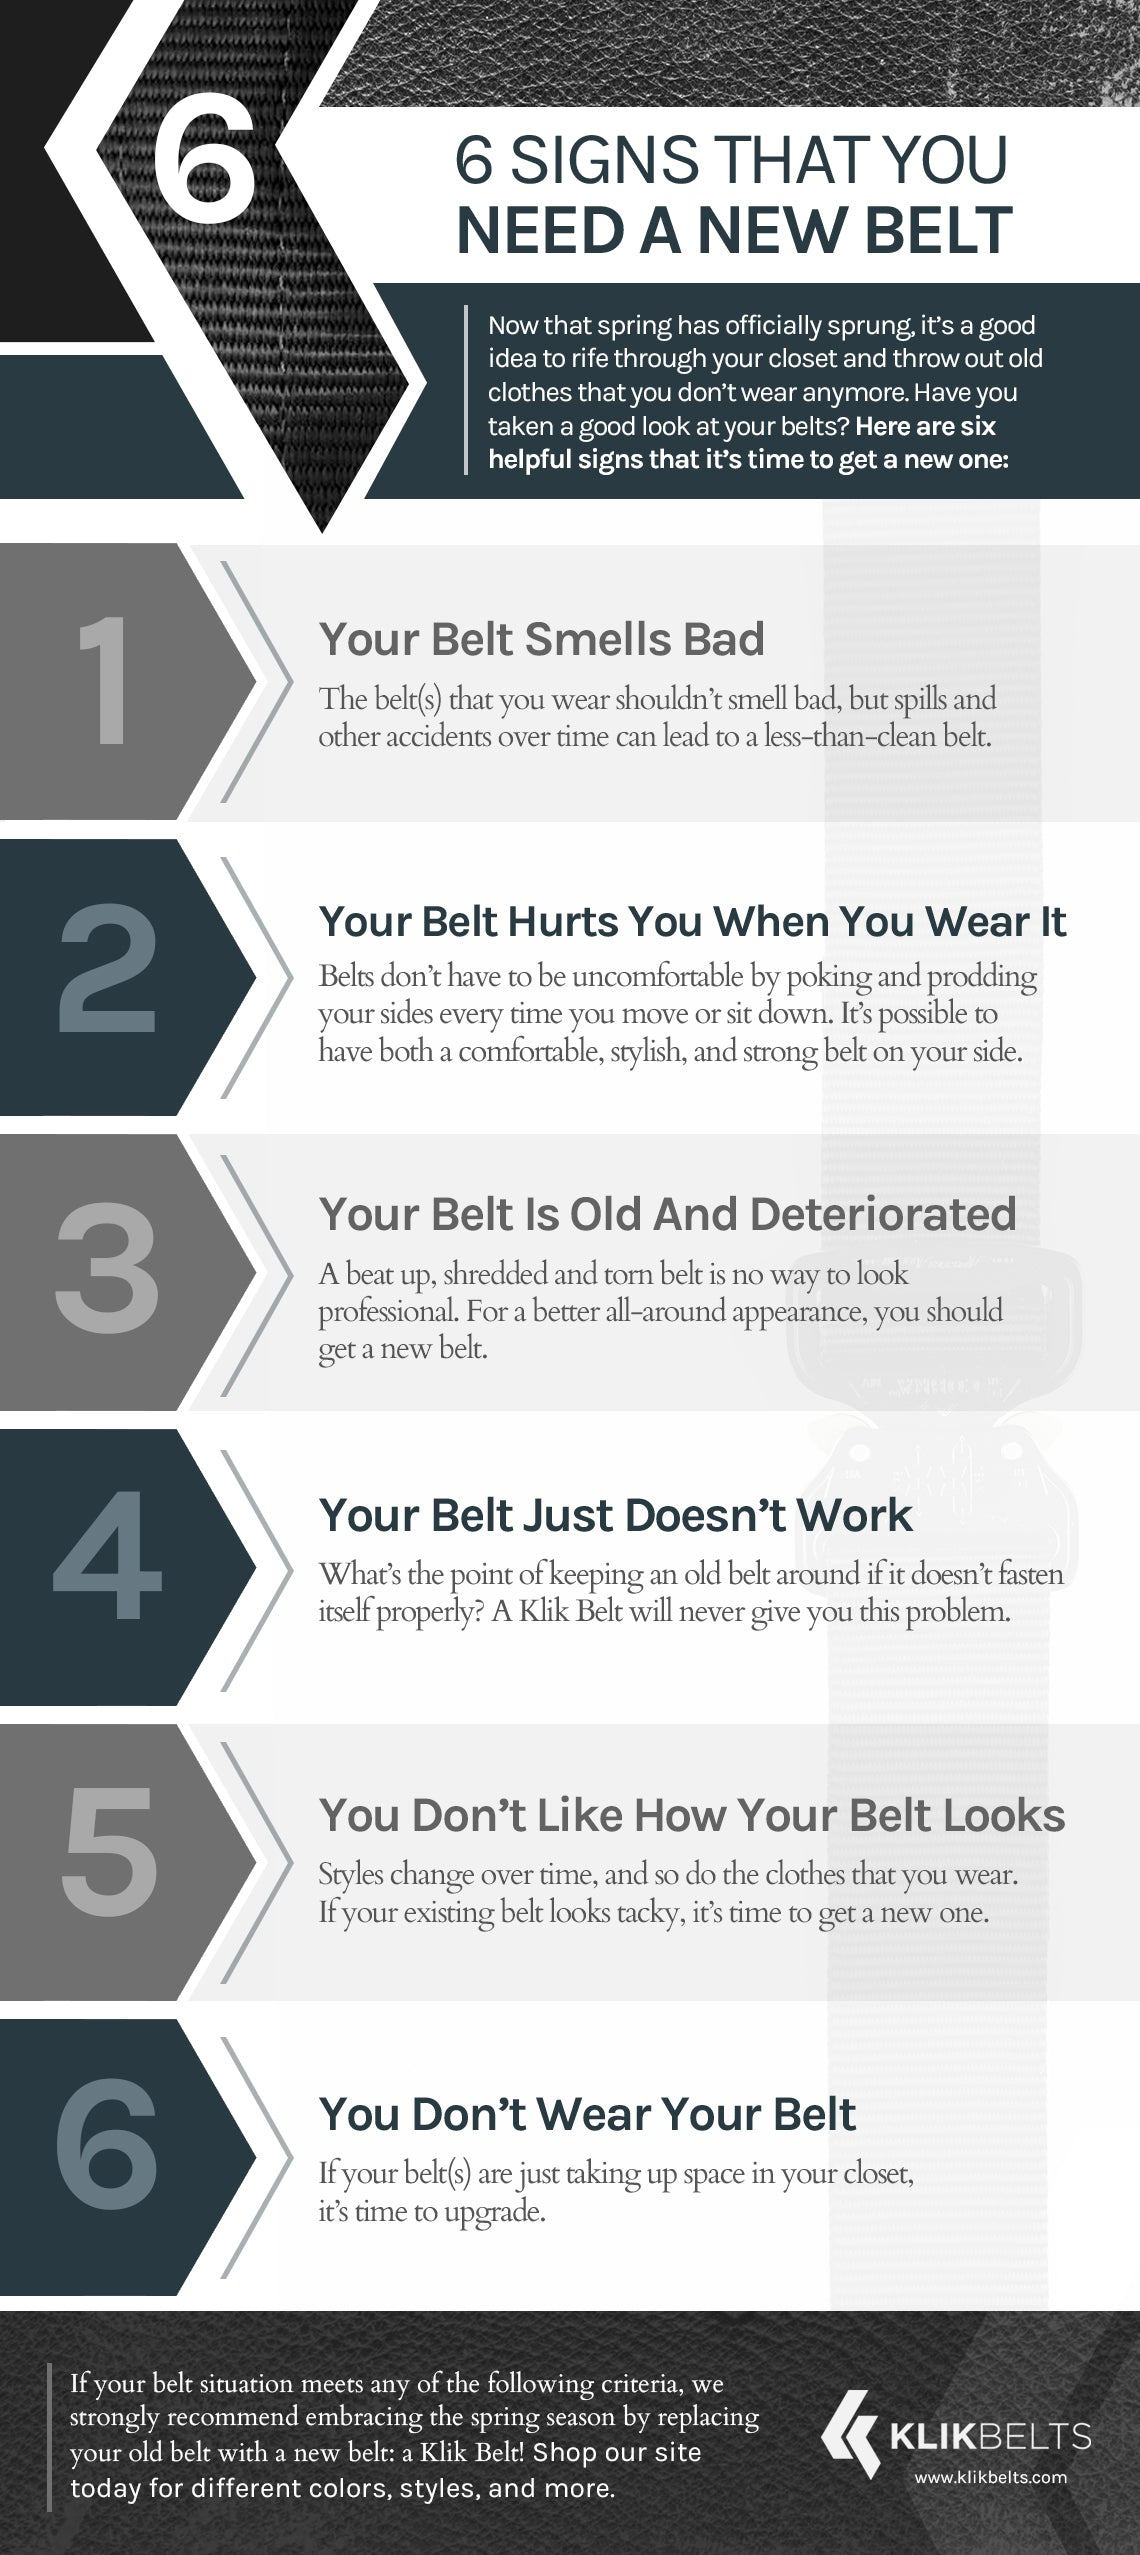 6 Signs That You Need A New Belt